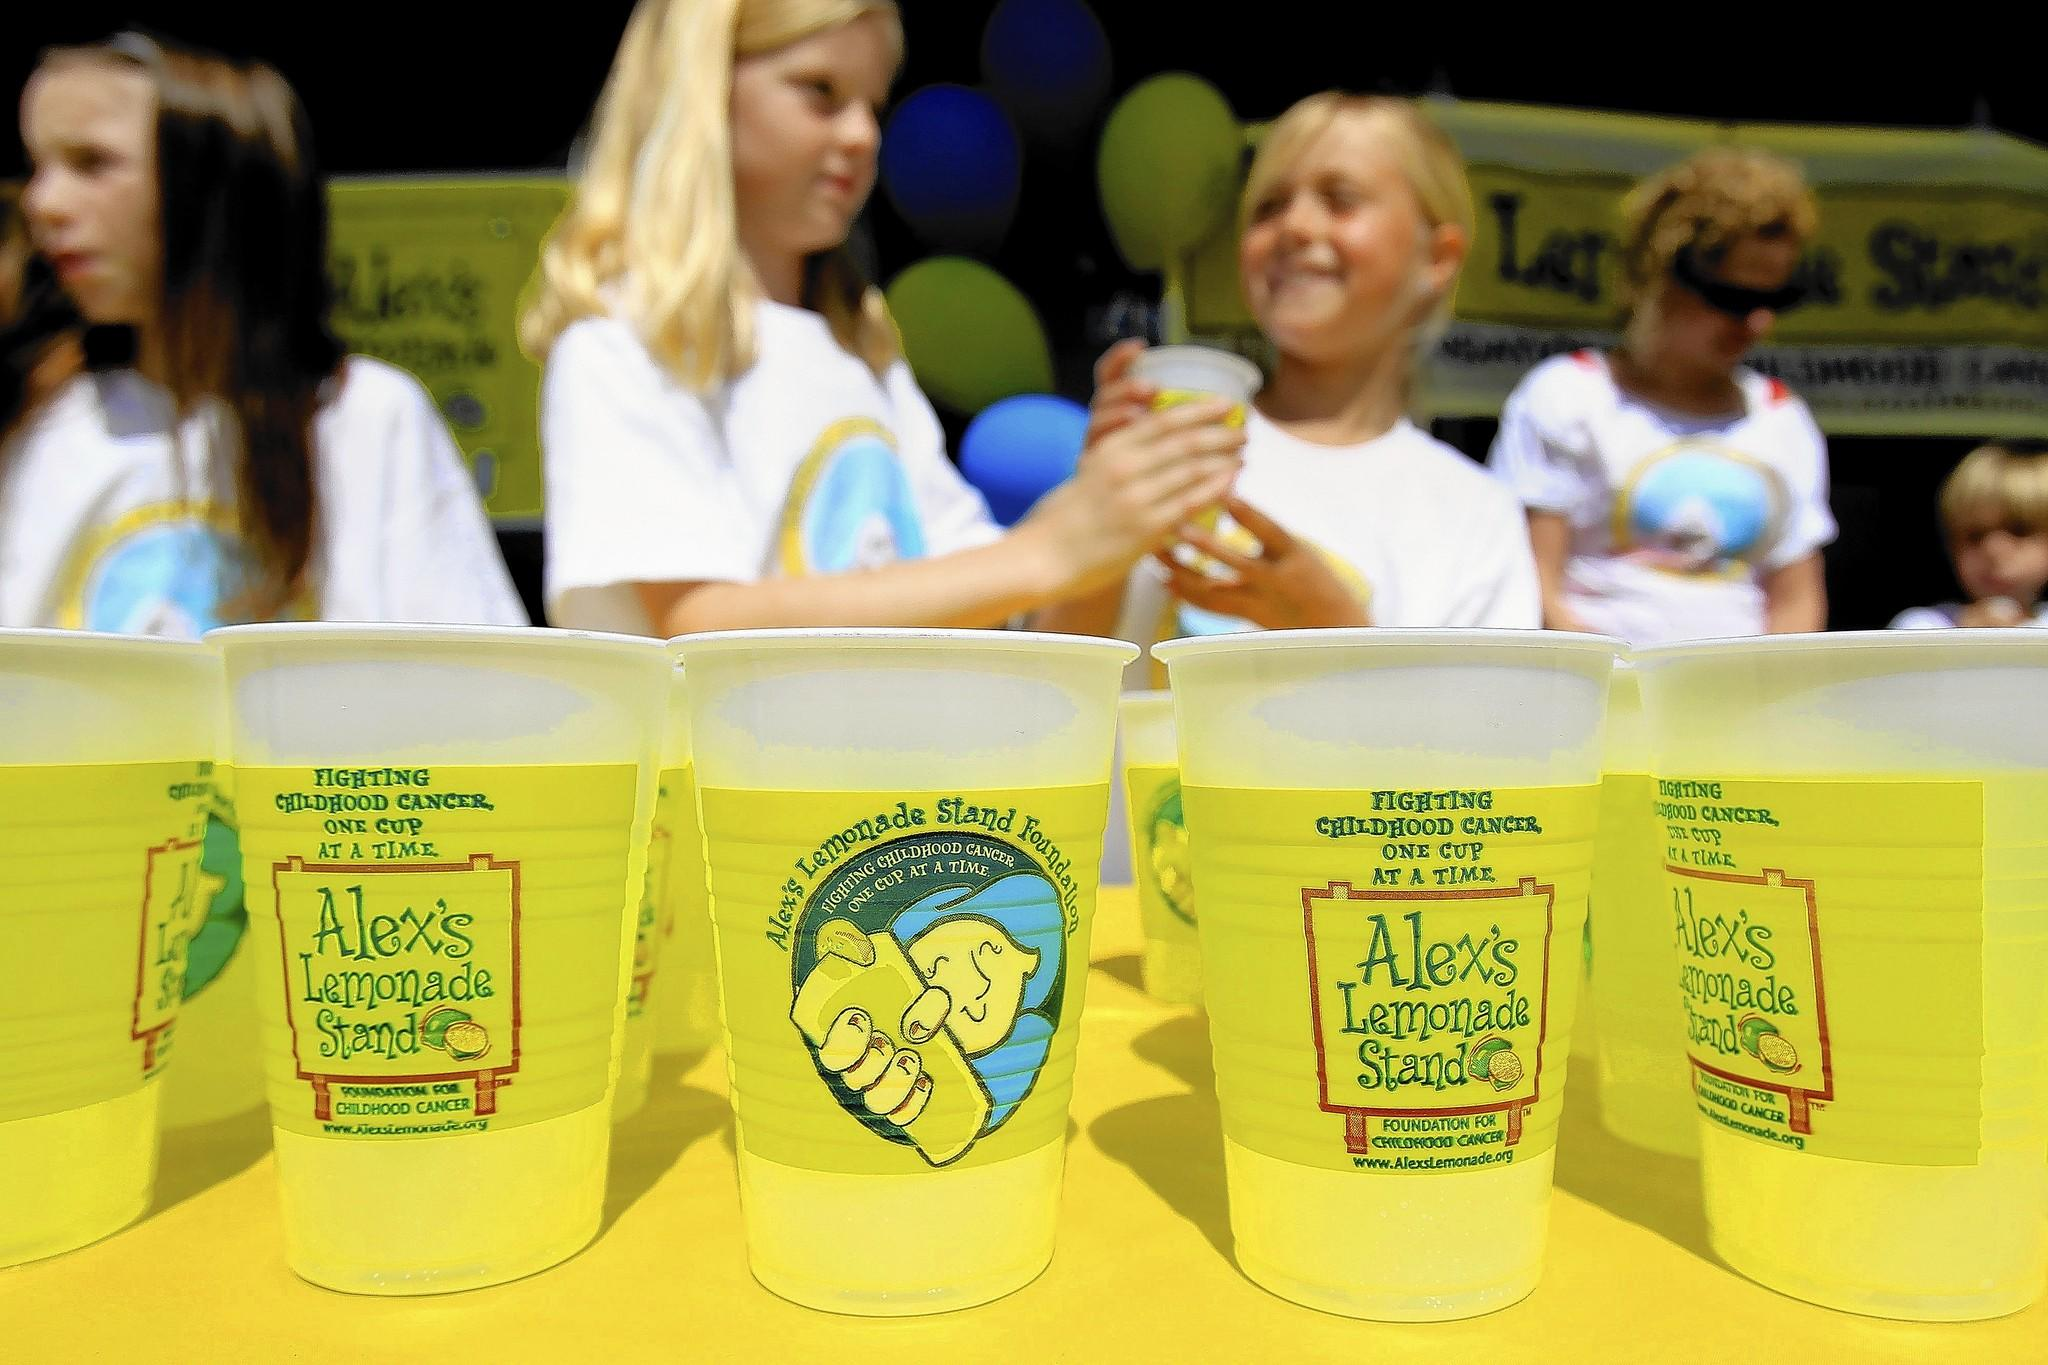 Members of the Lemonade Business Club at El Morro Elementary School help raise money for Alex's Lemonade Stand Foundation at lunchtime. All the money raised will go toward funding research for childhood cancer. Each cup of lemonade was sold for $1.